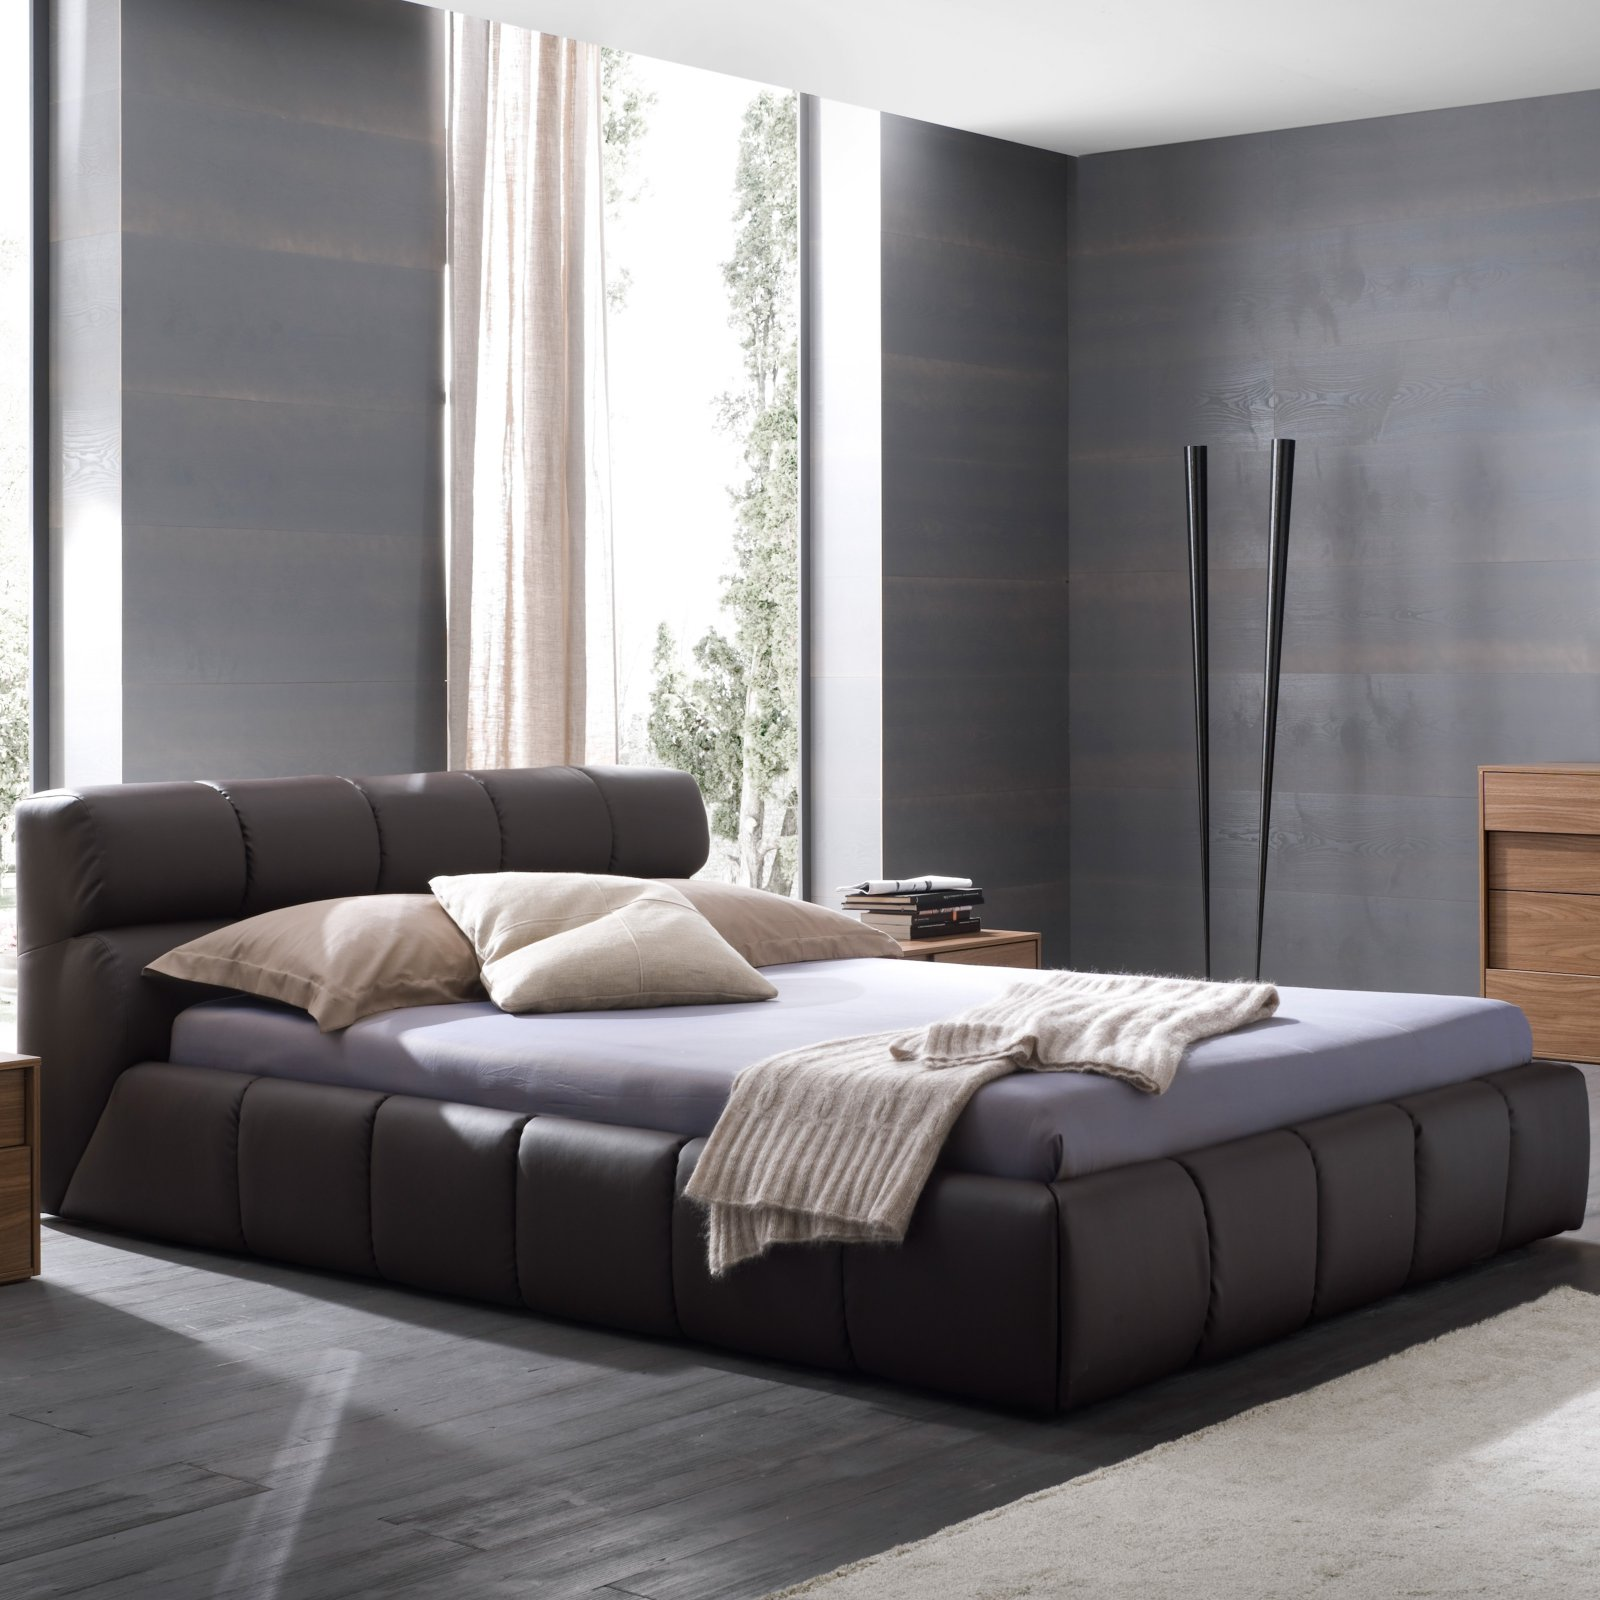 Rossetto Cloud Platform Bed Brown by Rossetto USA